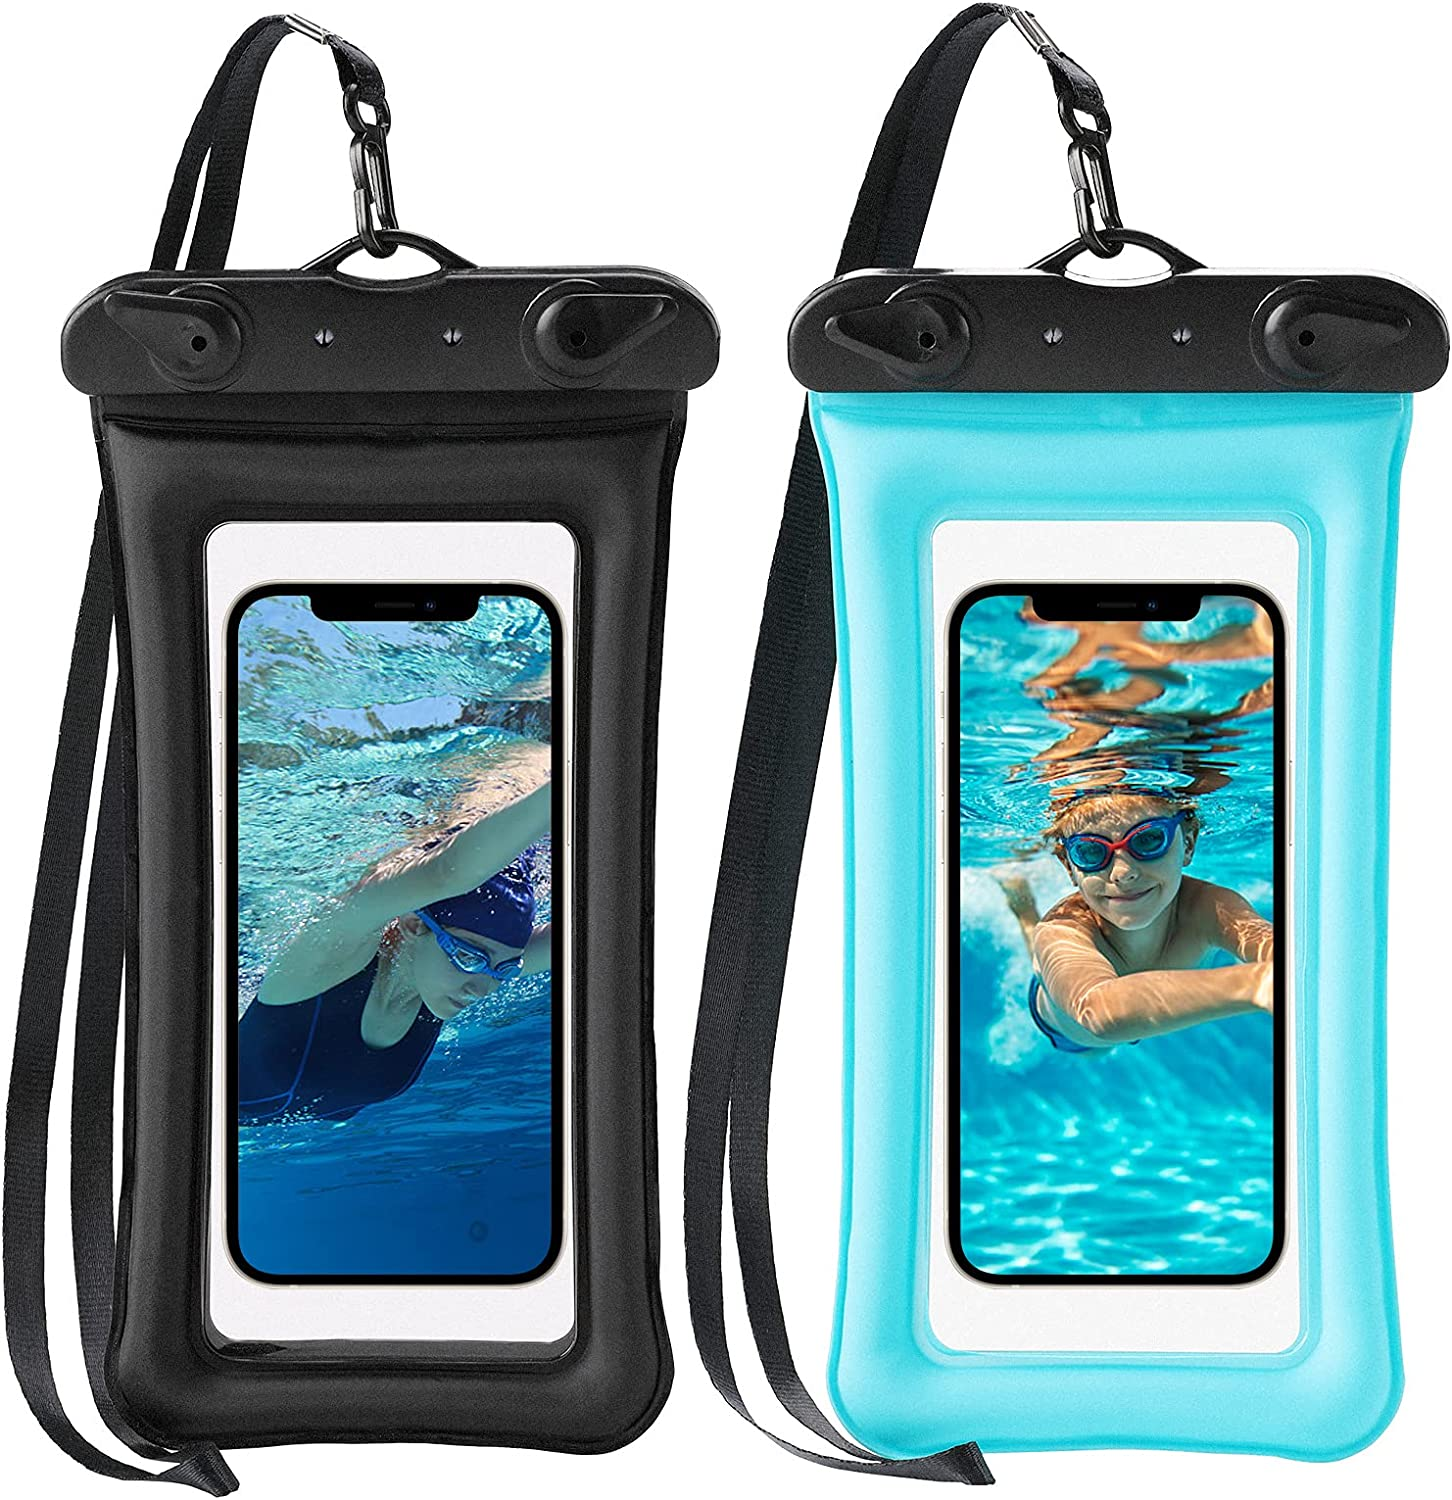 Universal Extra-Large Waterproof Pouch,Underwater Dry Bag for iPhone 12ProMax,Google Pixel5,Galaxy S21Ultra and Other Smart Phones Up to 7.0